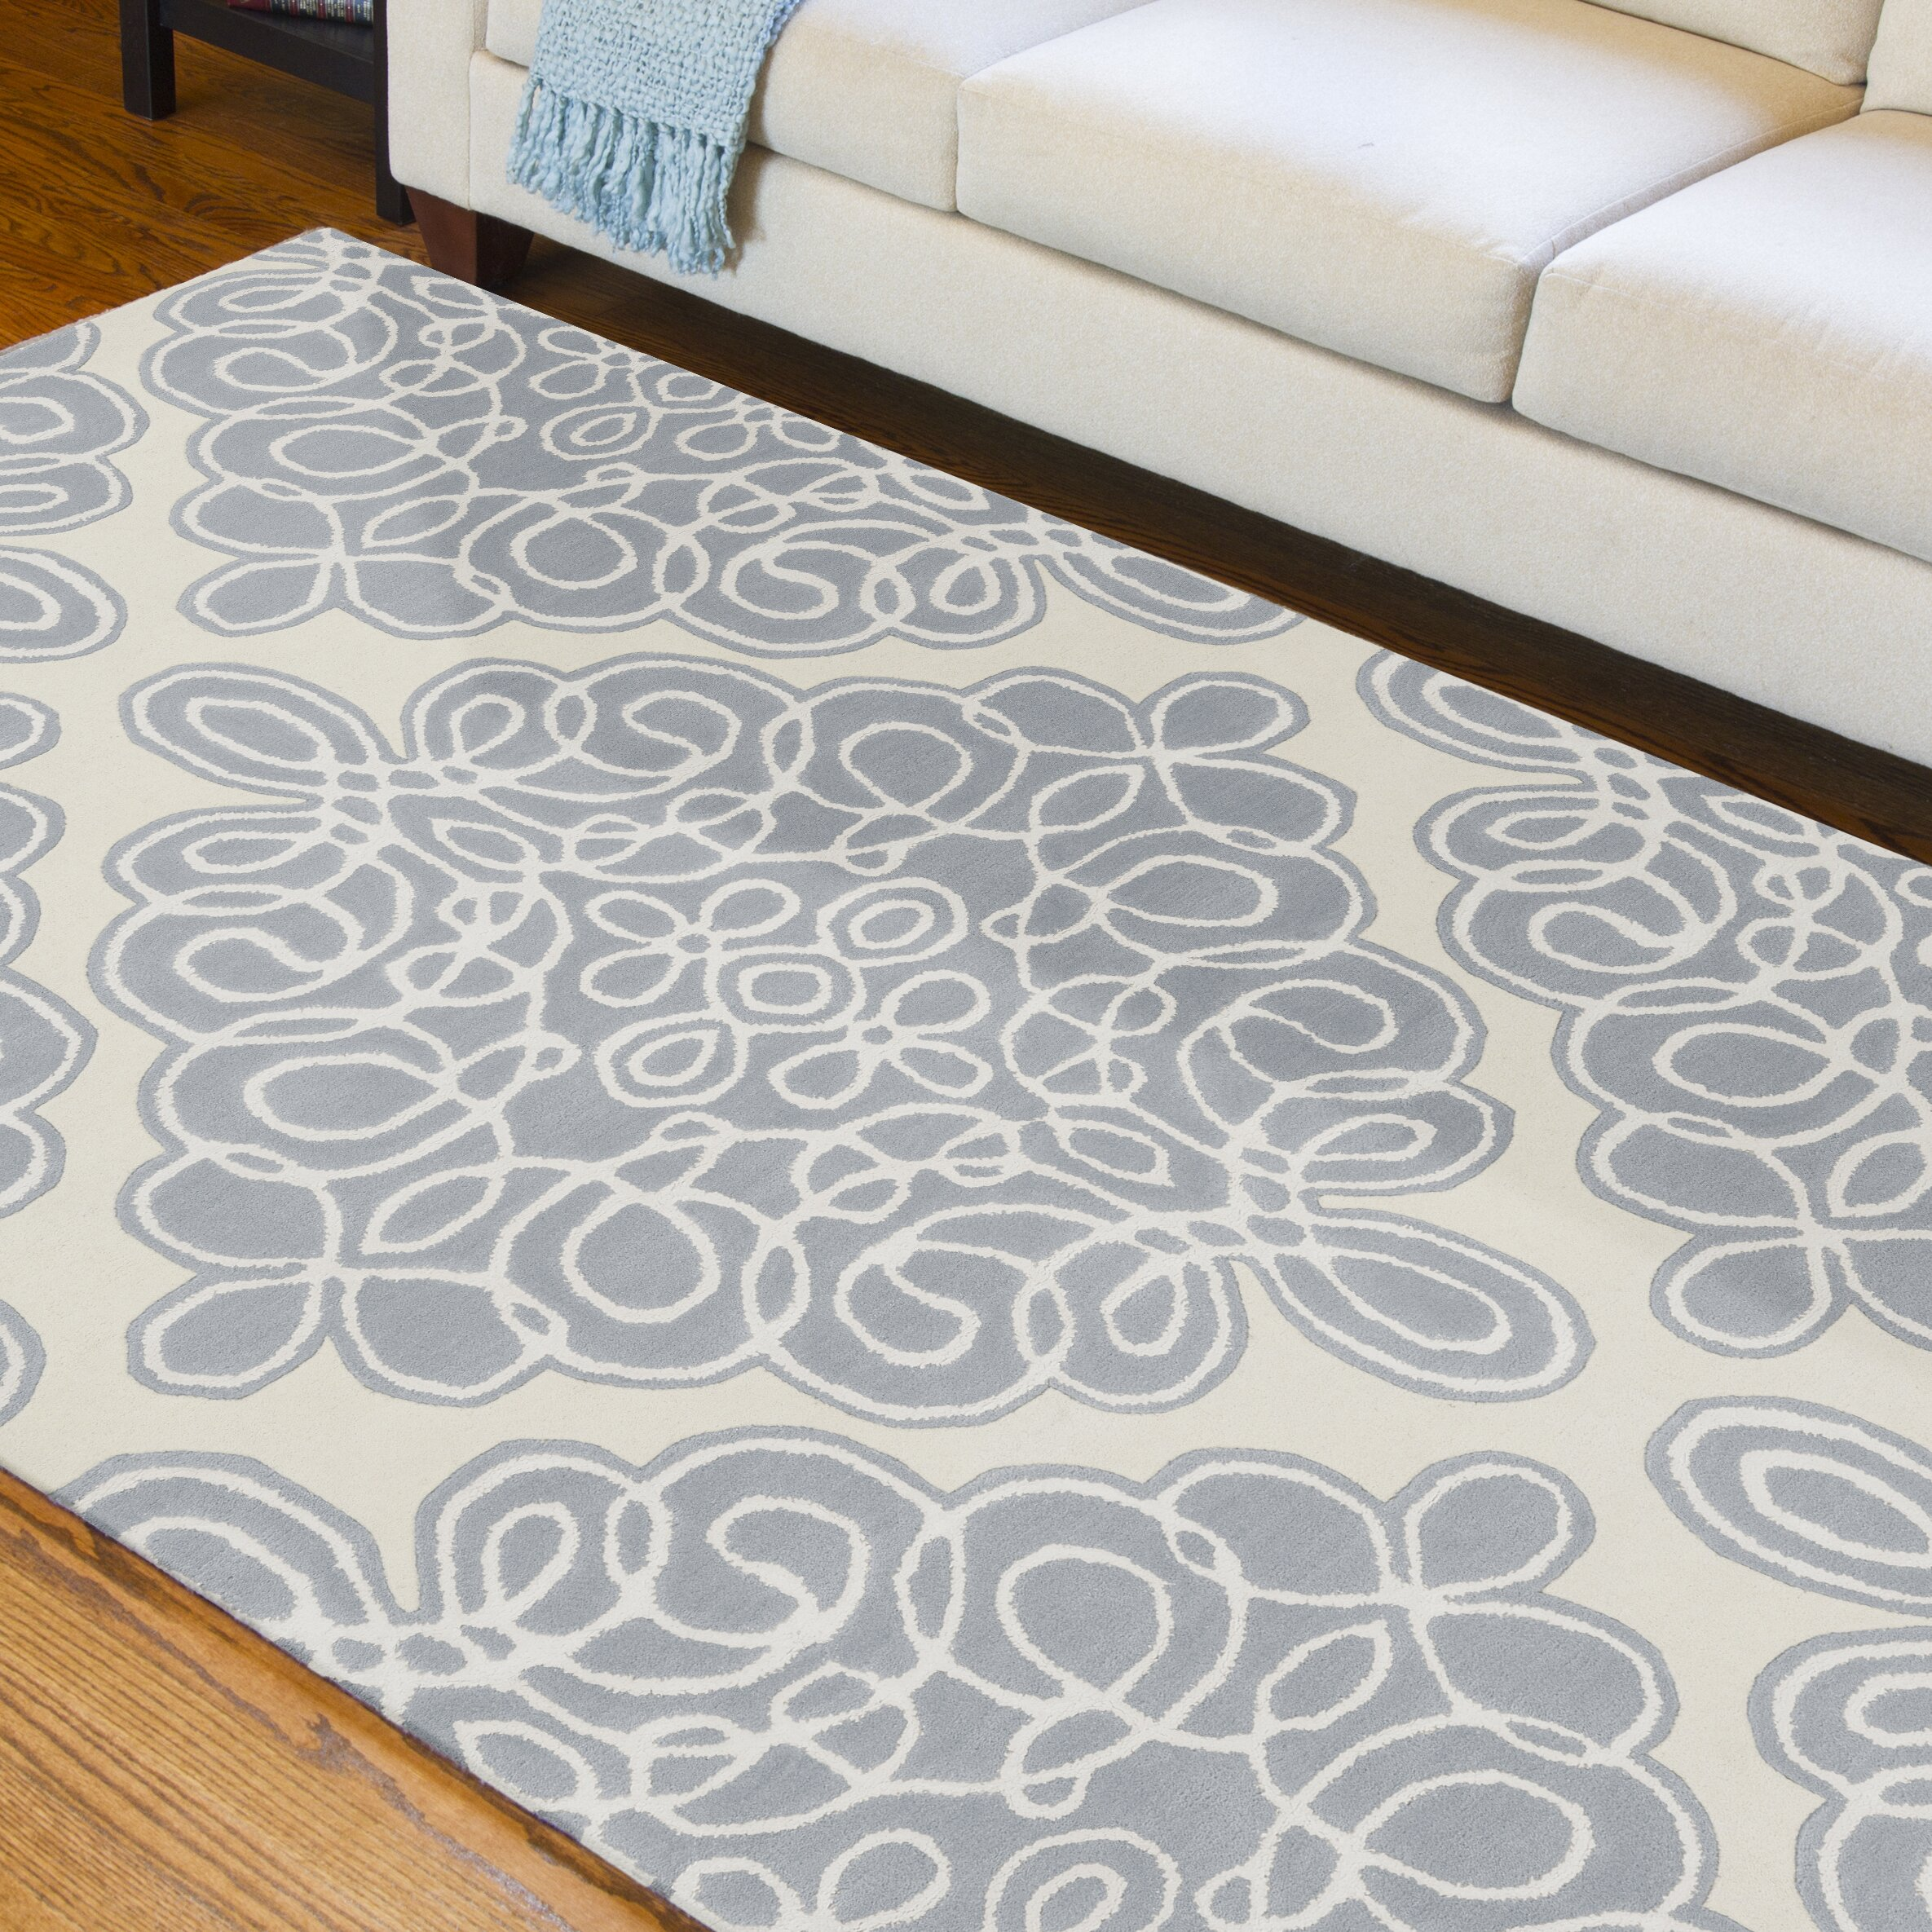 Candice Olson Rugs Modern Clics Cream Area Rug